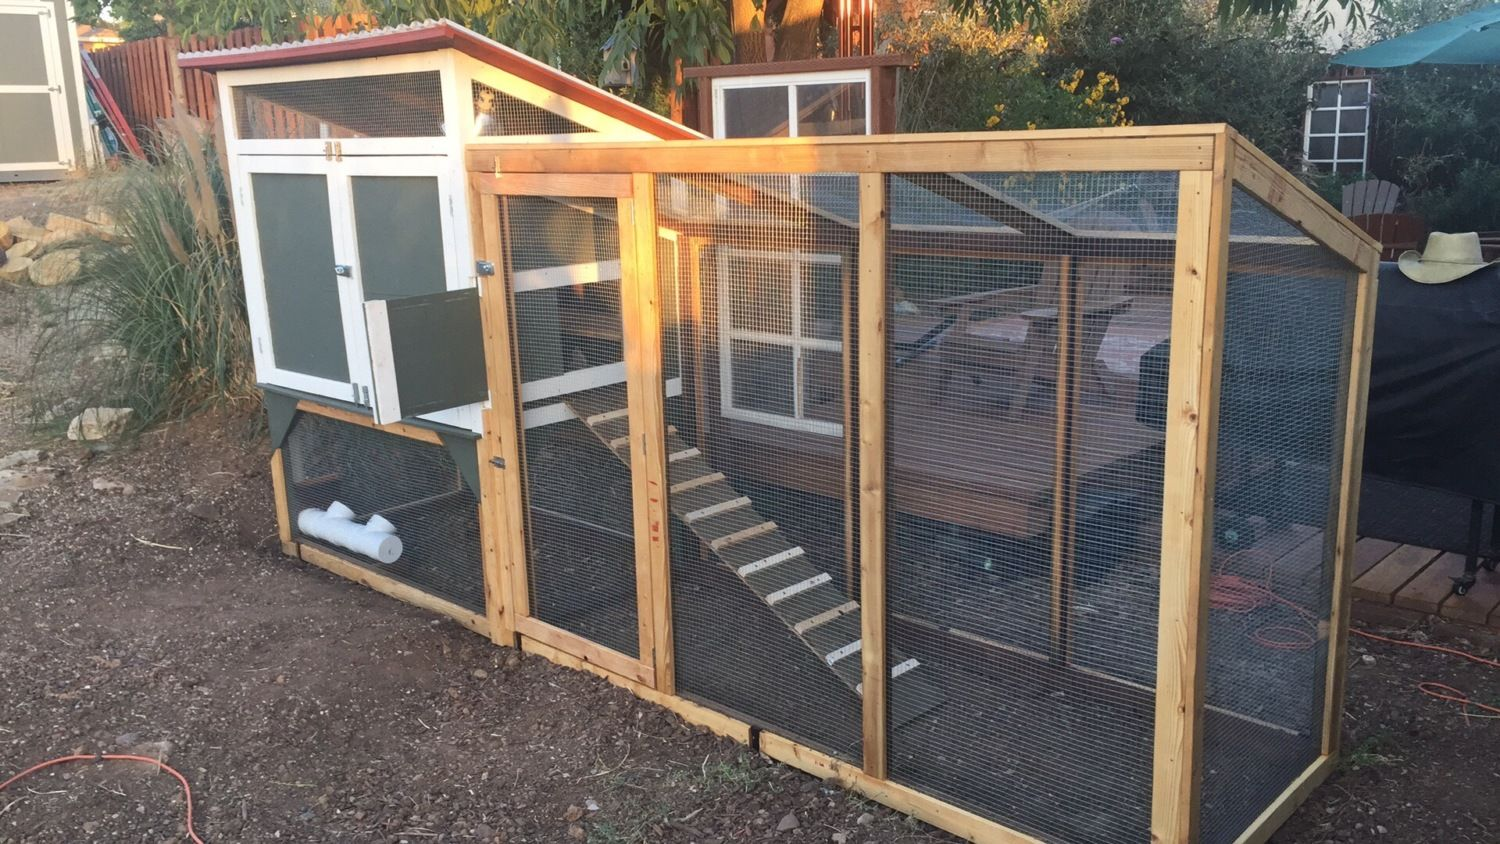 Dean and Tina's Backyard Chicken Coop